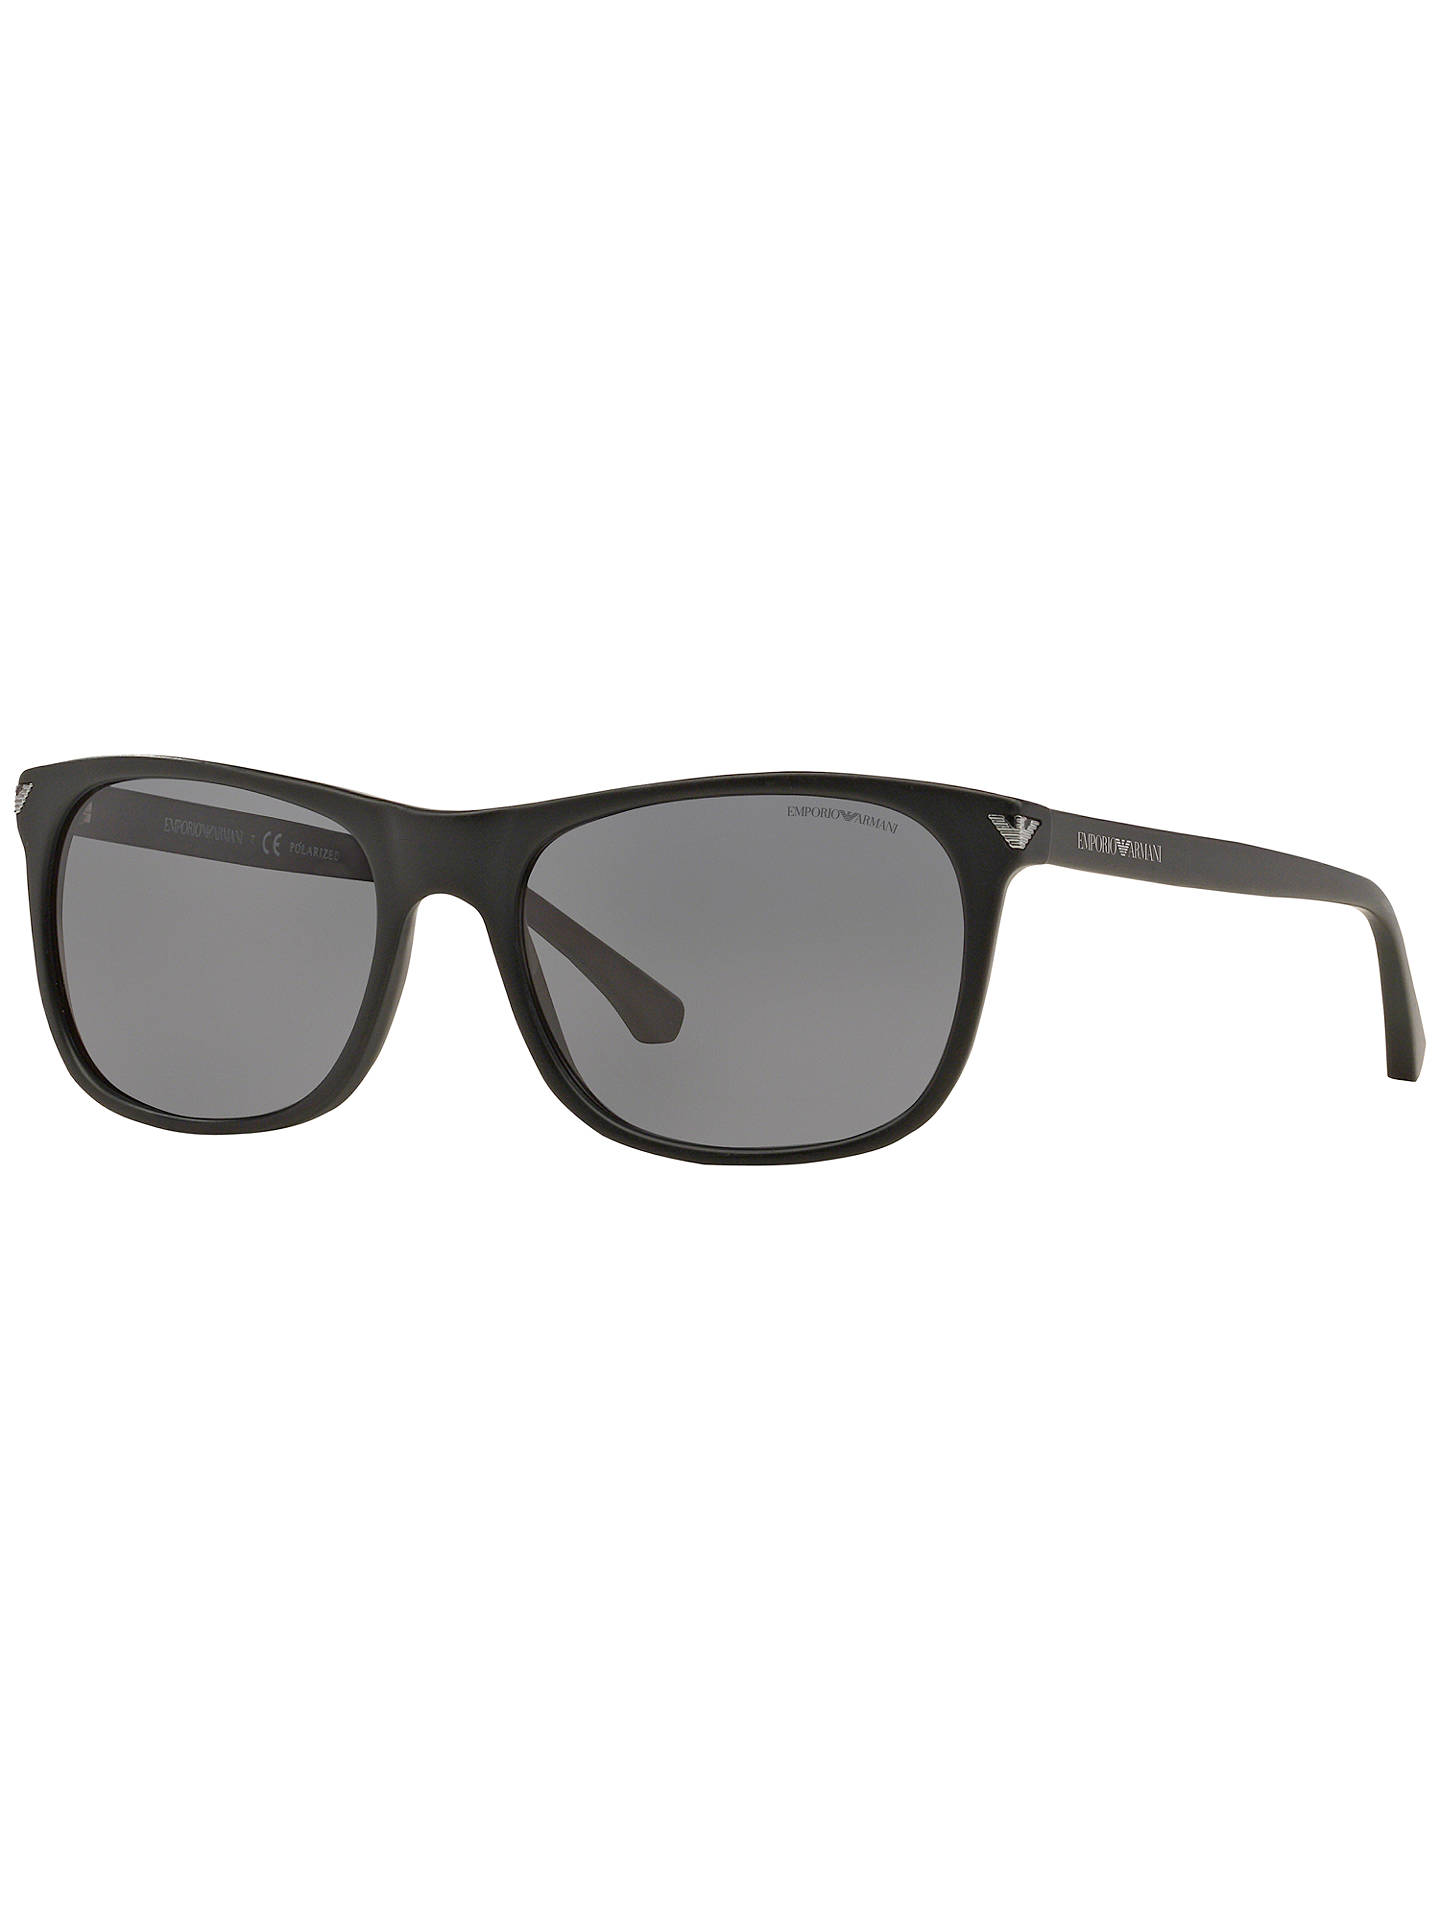 b86568566f5e Buy Emporio Armani EA4056 Polarised Rectangular Sunglasses